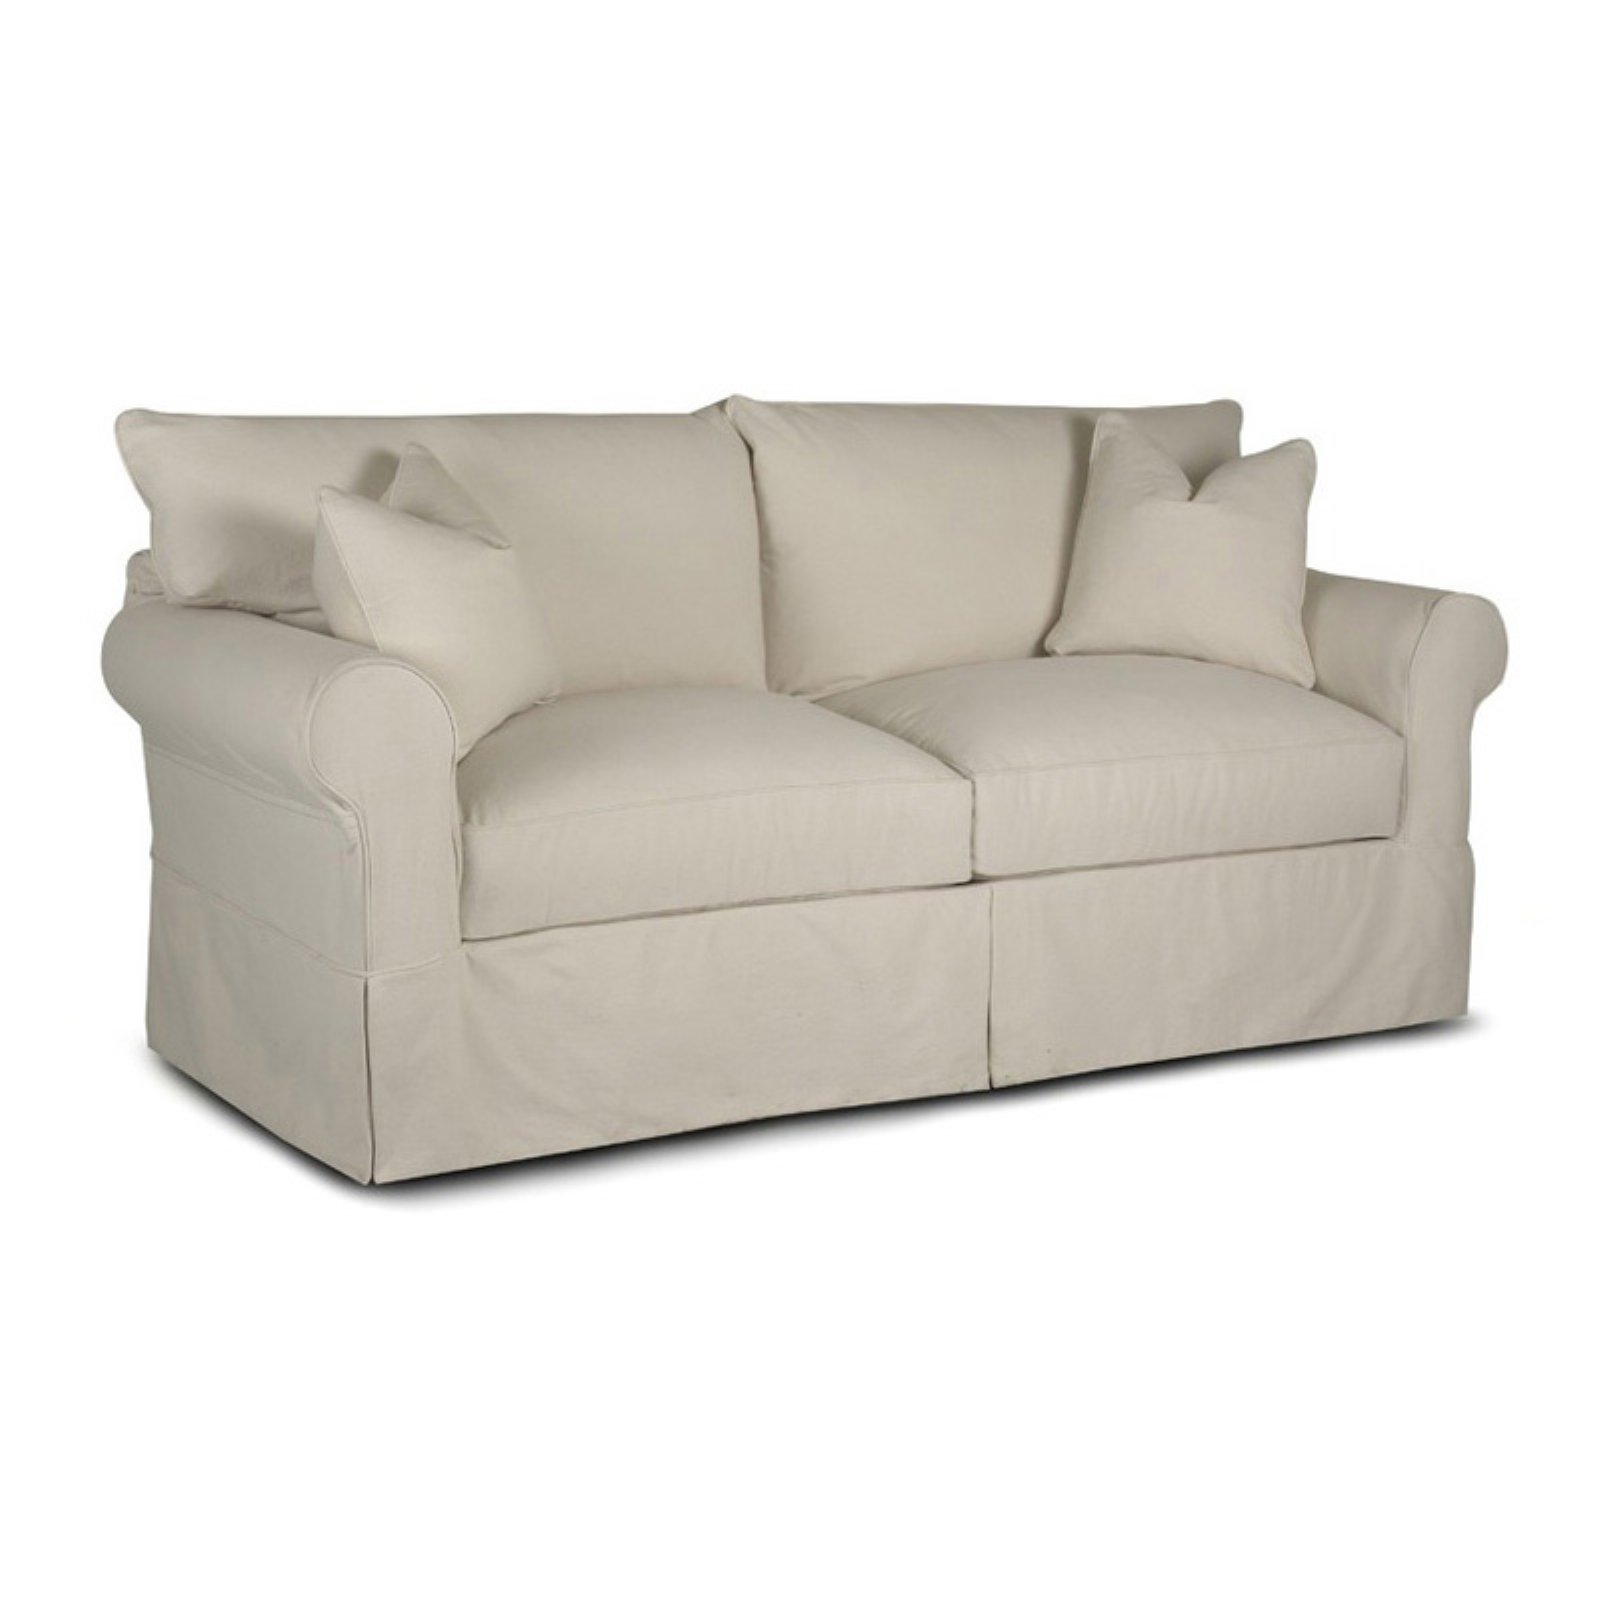 Delicieux Klaussner Jenny Sofa   Bull Natural